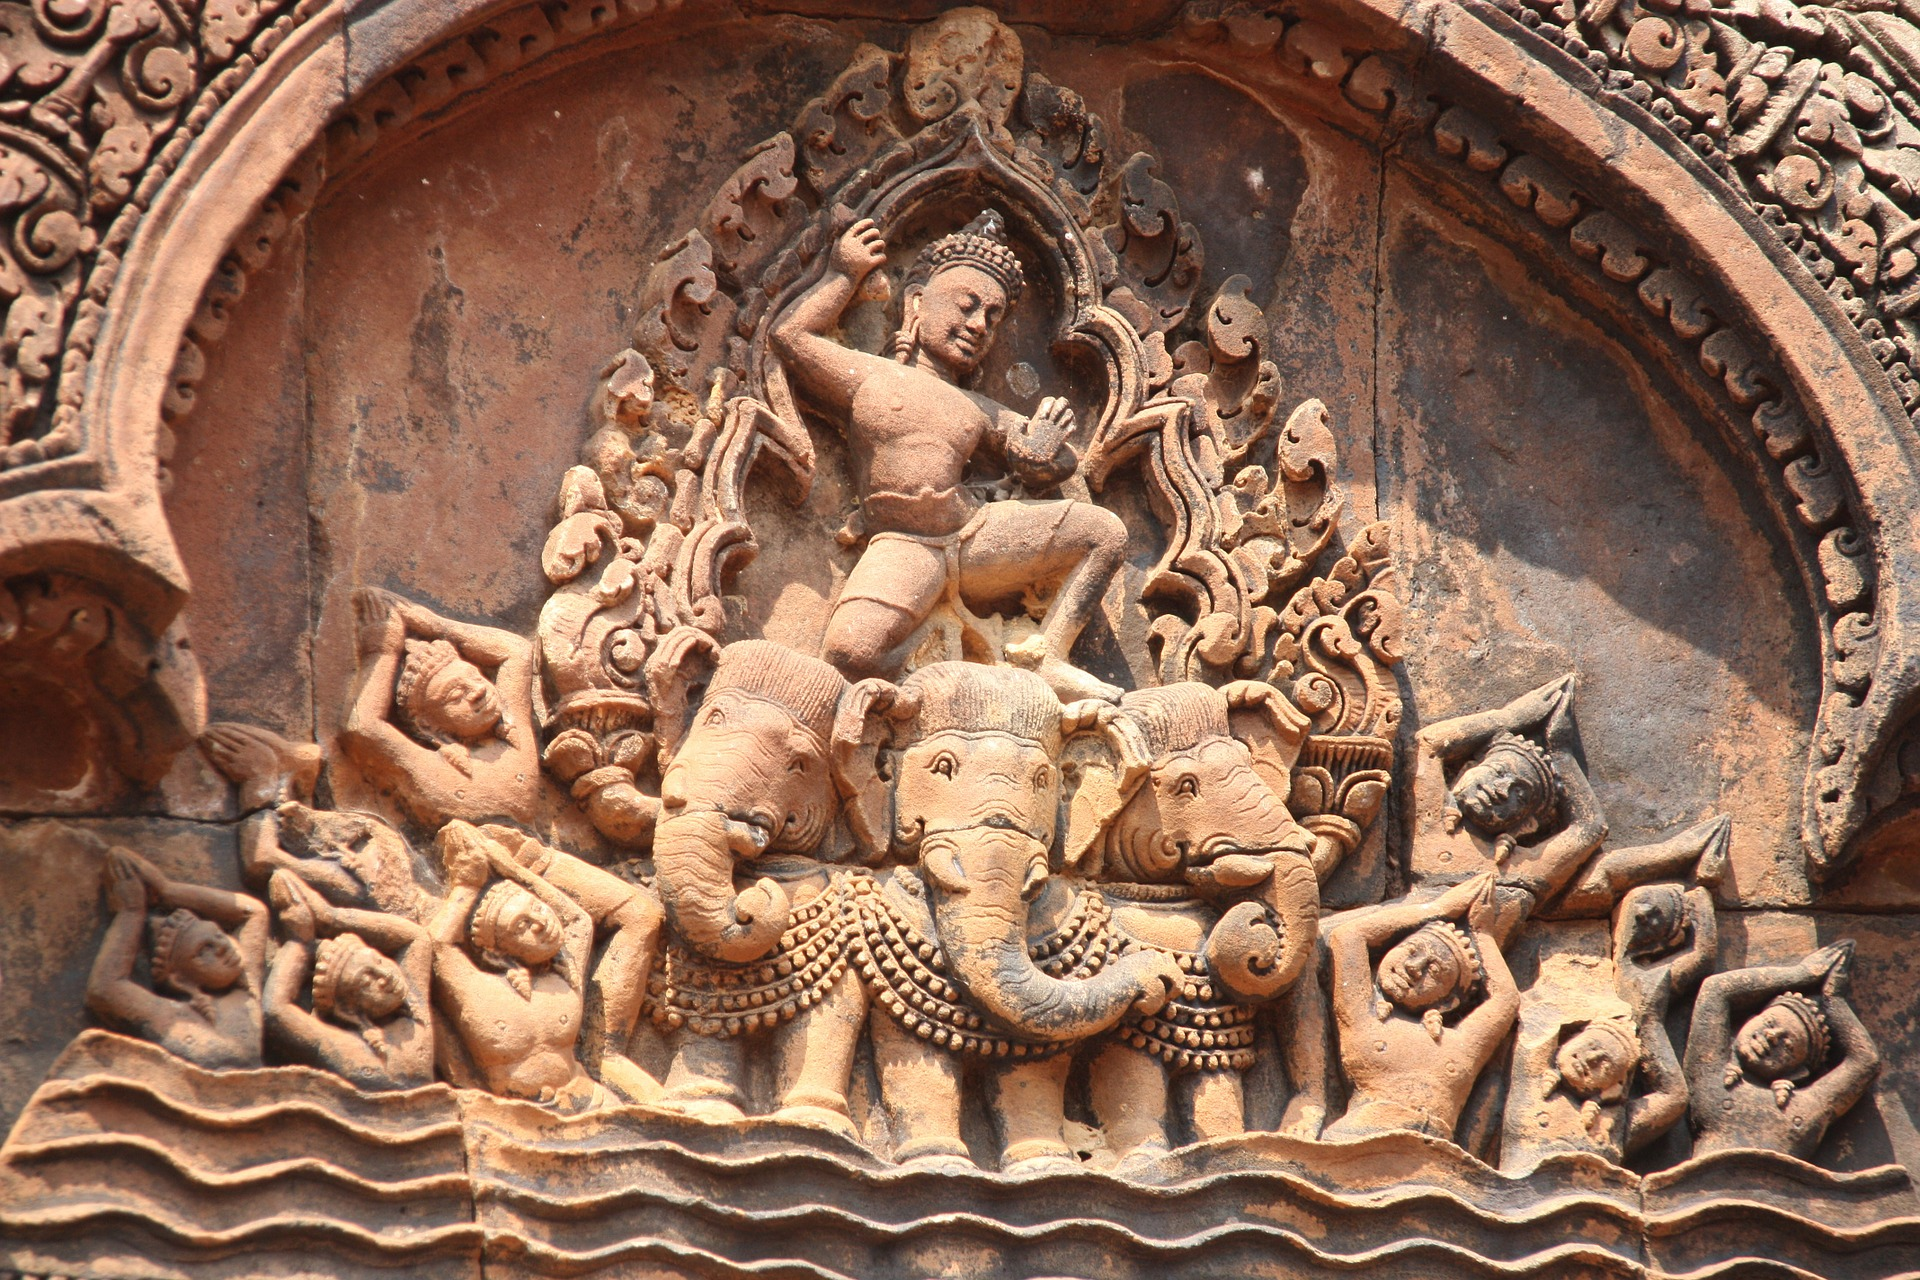 Image: Carving from a Cambodian Temple at Angkor of a deity riding a many headed elephant